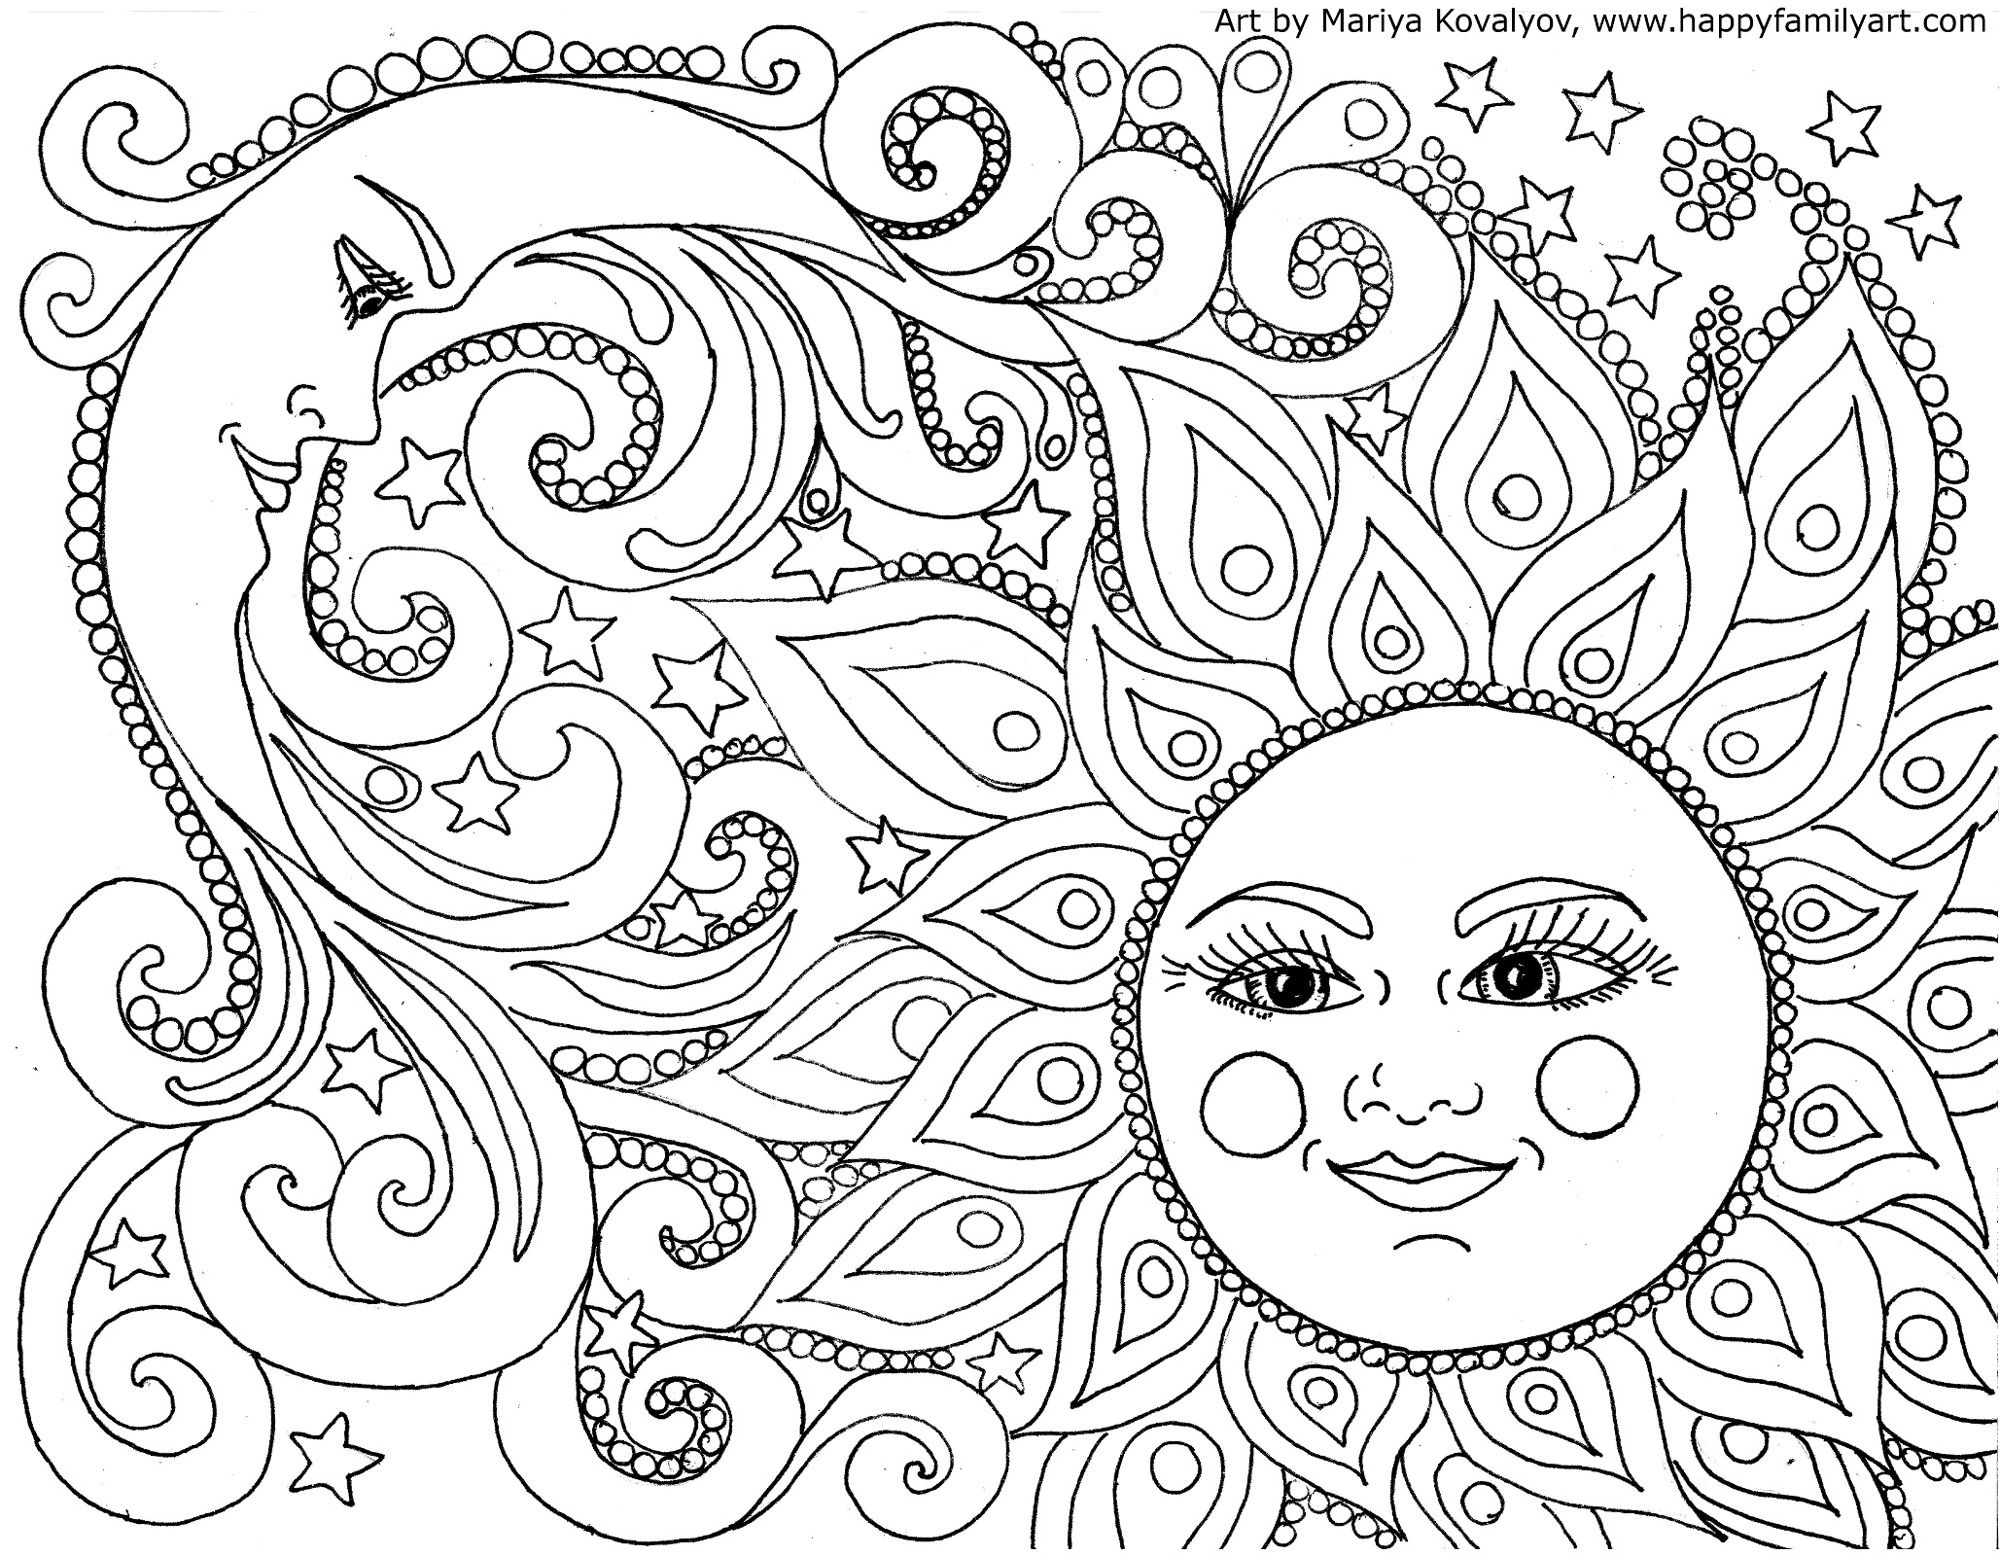 Free coloring pages com printable - I Made Many Great Fun And Original Coloring Pages Color Your Heart Out Printable Adult Coloring Pagescoloring Booksfree